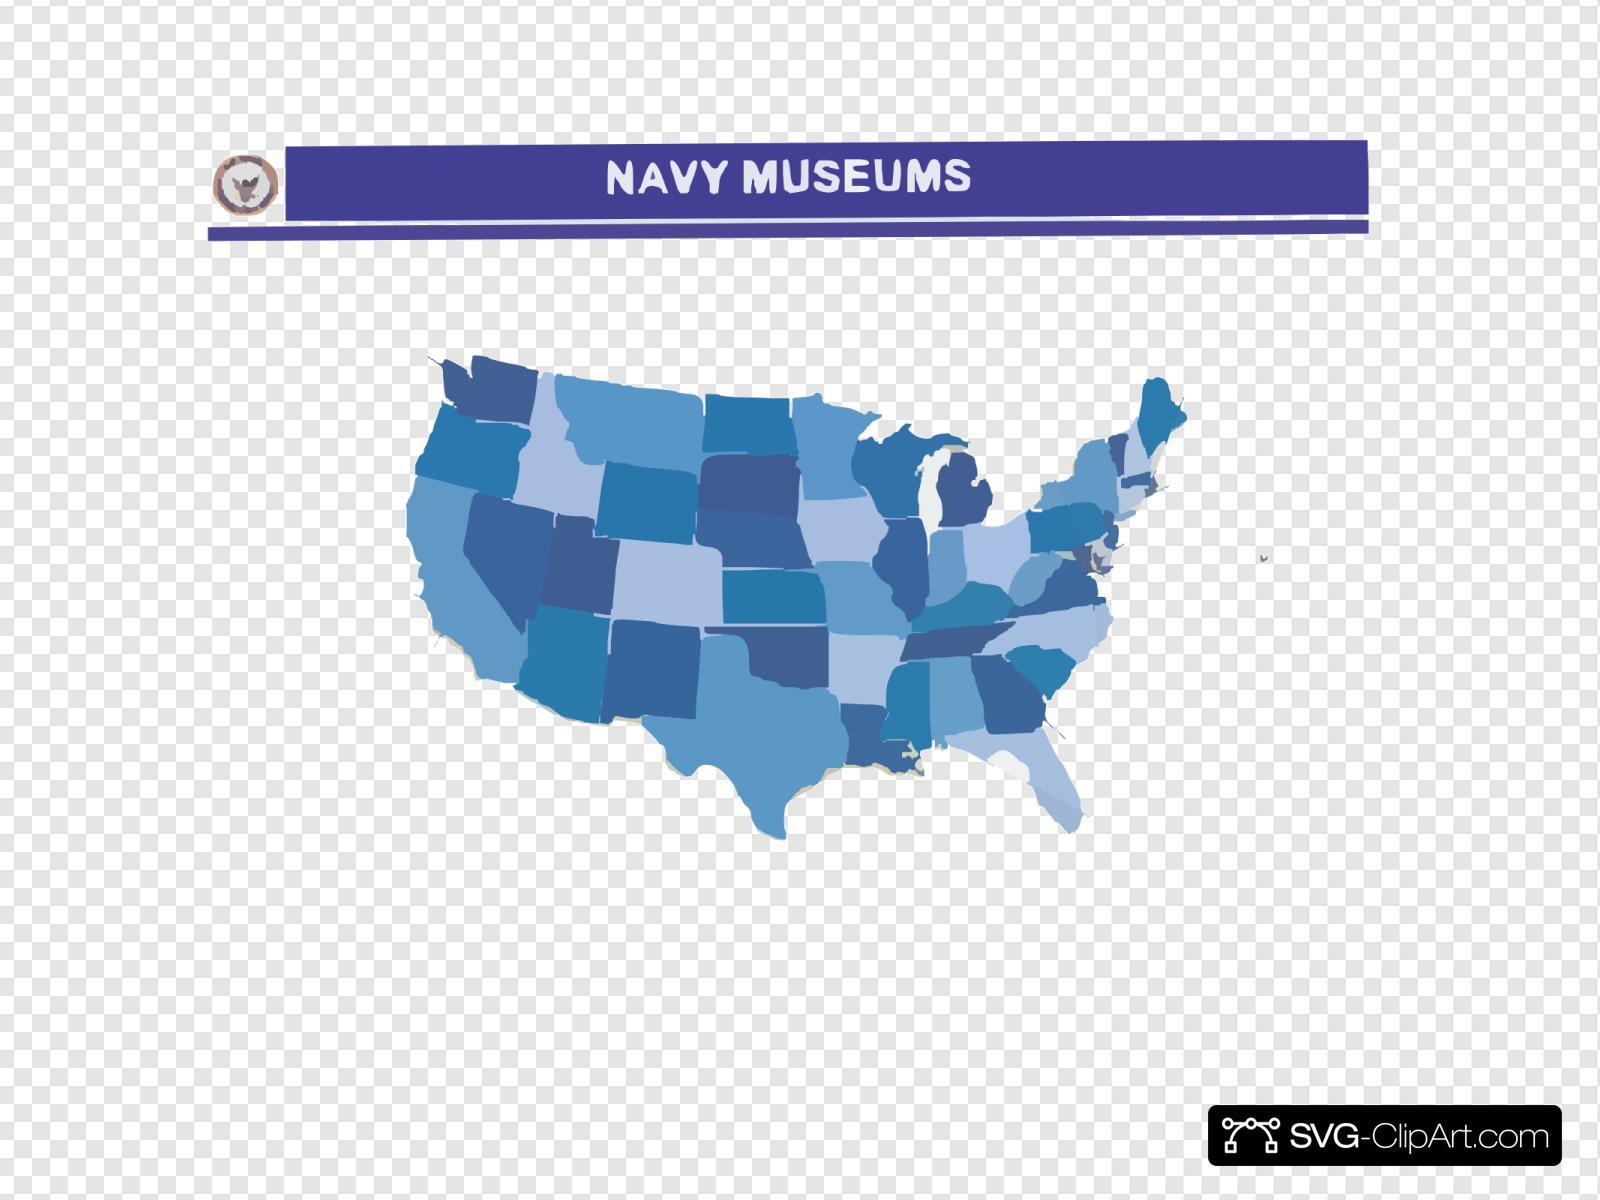 Eleven Navy Museums Located At Shore Installations Around The Country Attract Two Million Visitors Annually, And Display Over One Million Artifacts